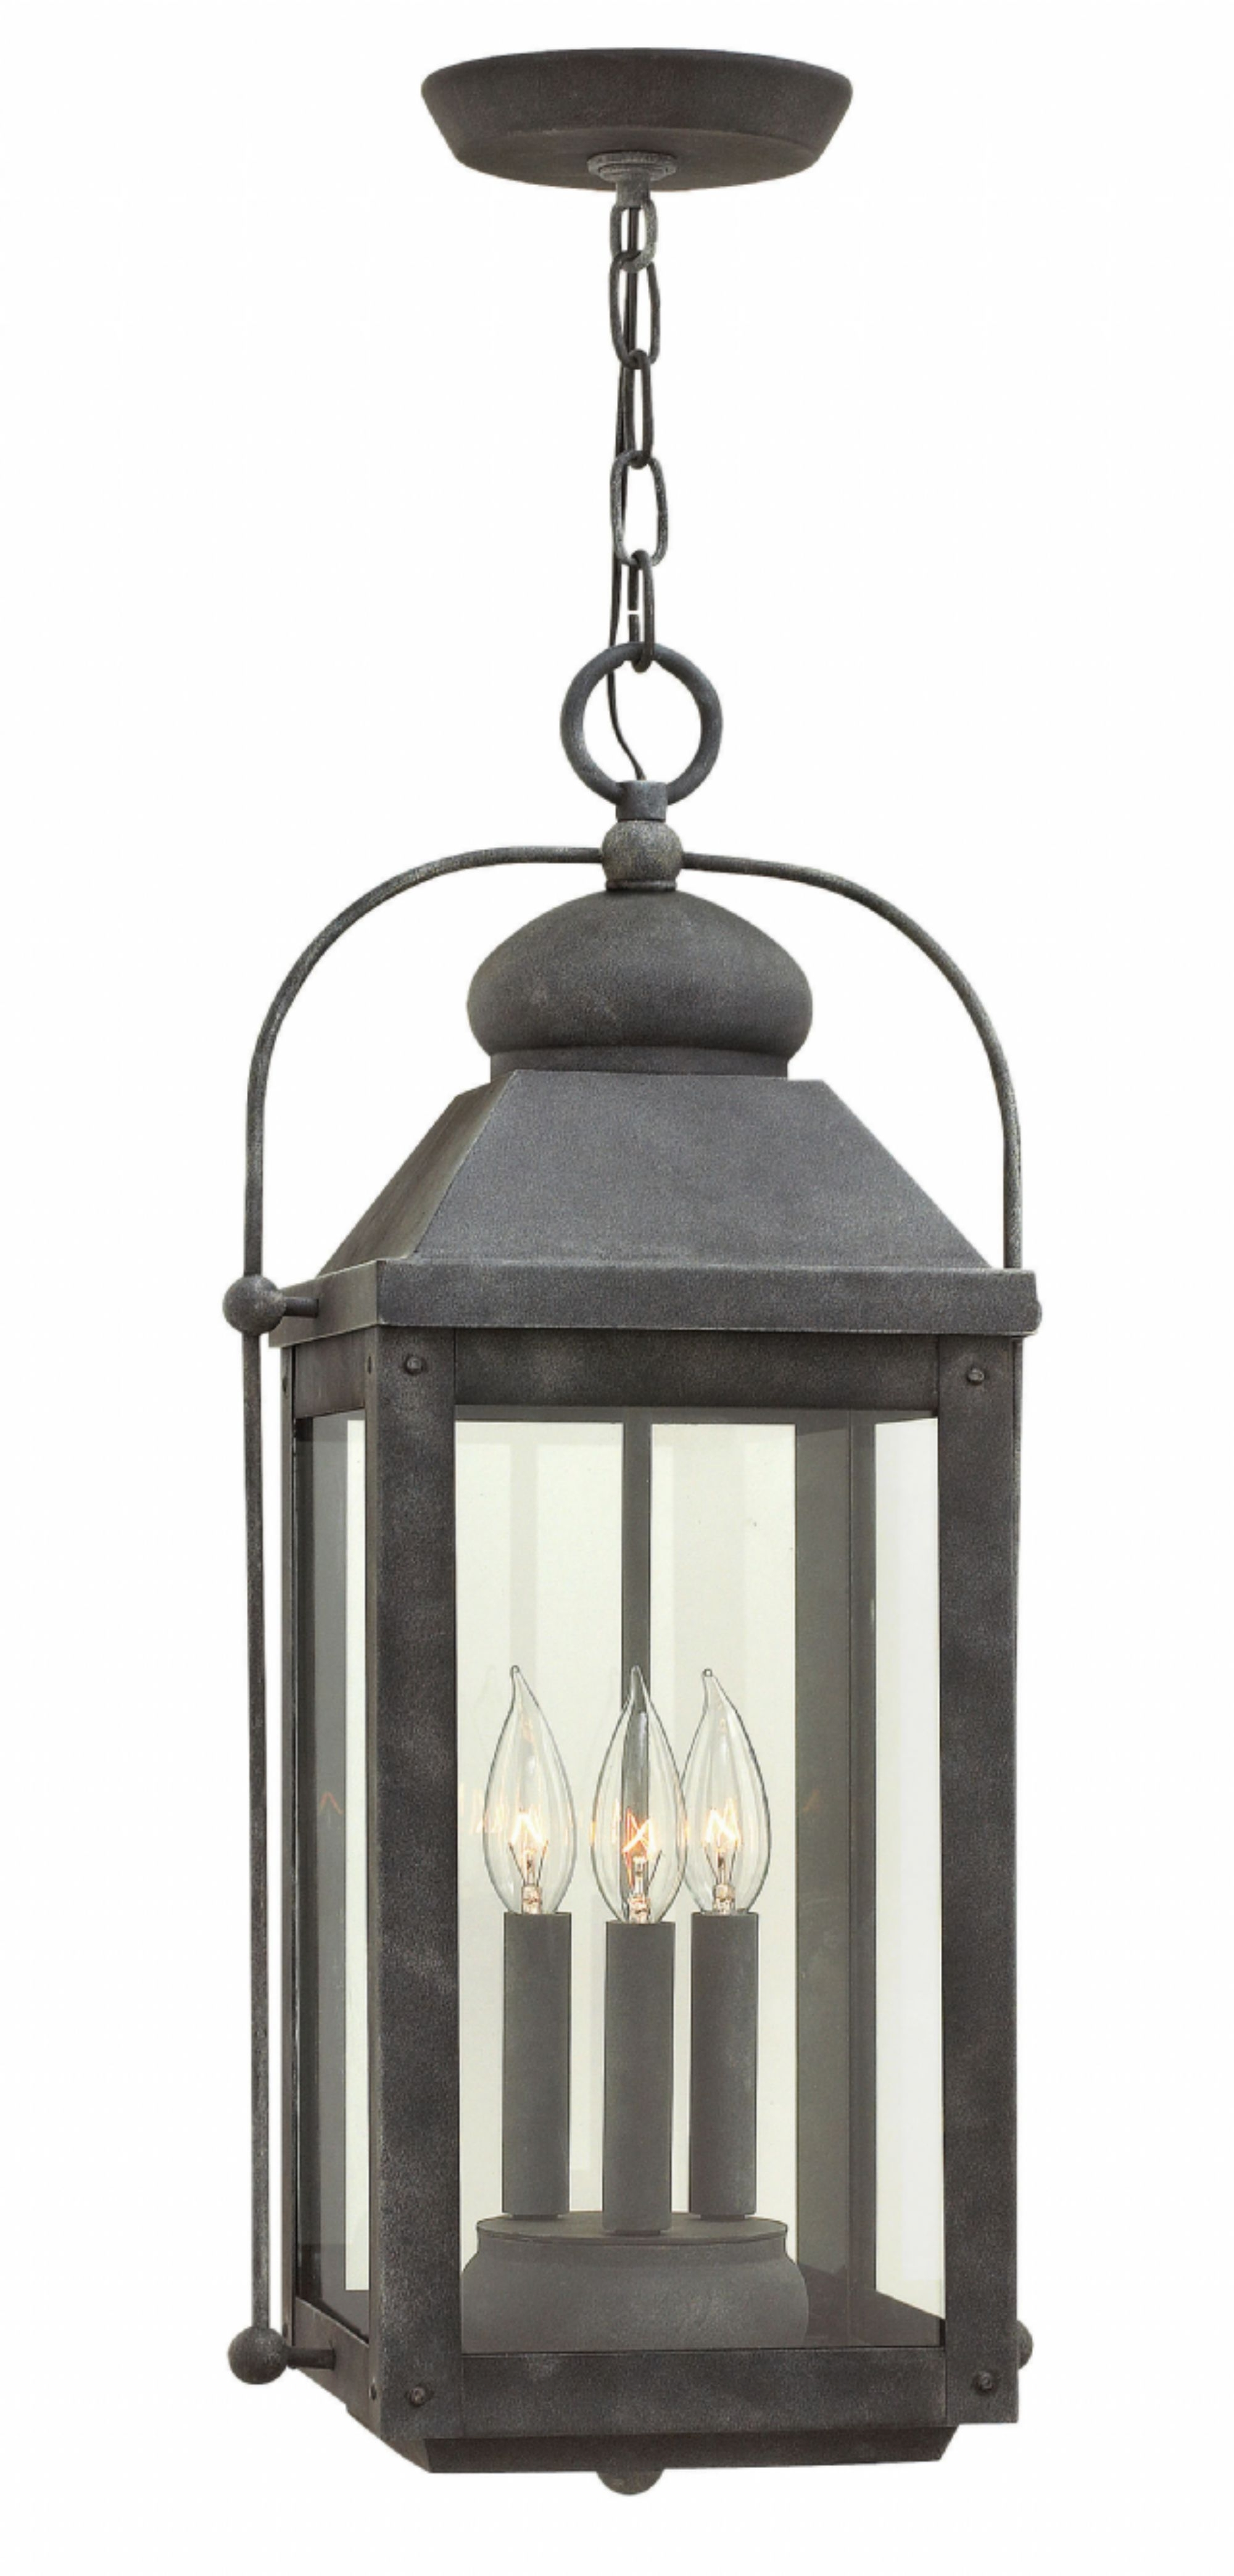 Zinc Outdoor Lanterns Inside Most Up To Date Aged Zinc Anchorage > Exterior Ceiling Mount (View 14 of 20)